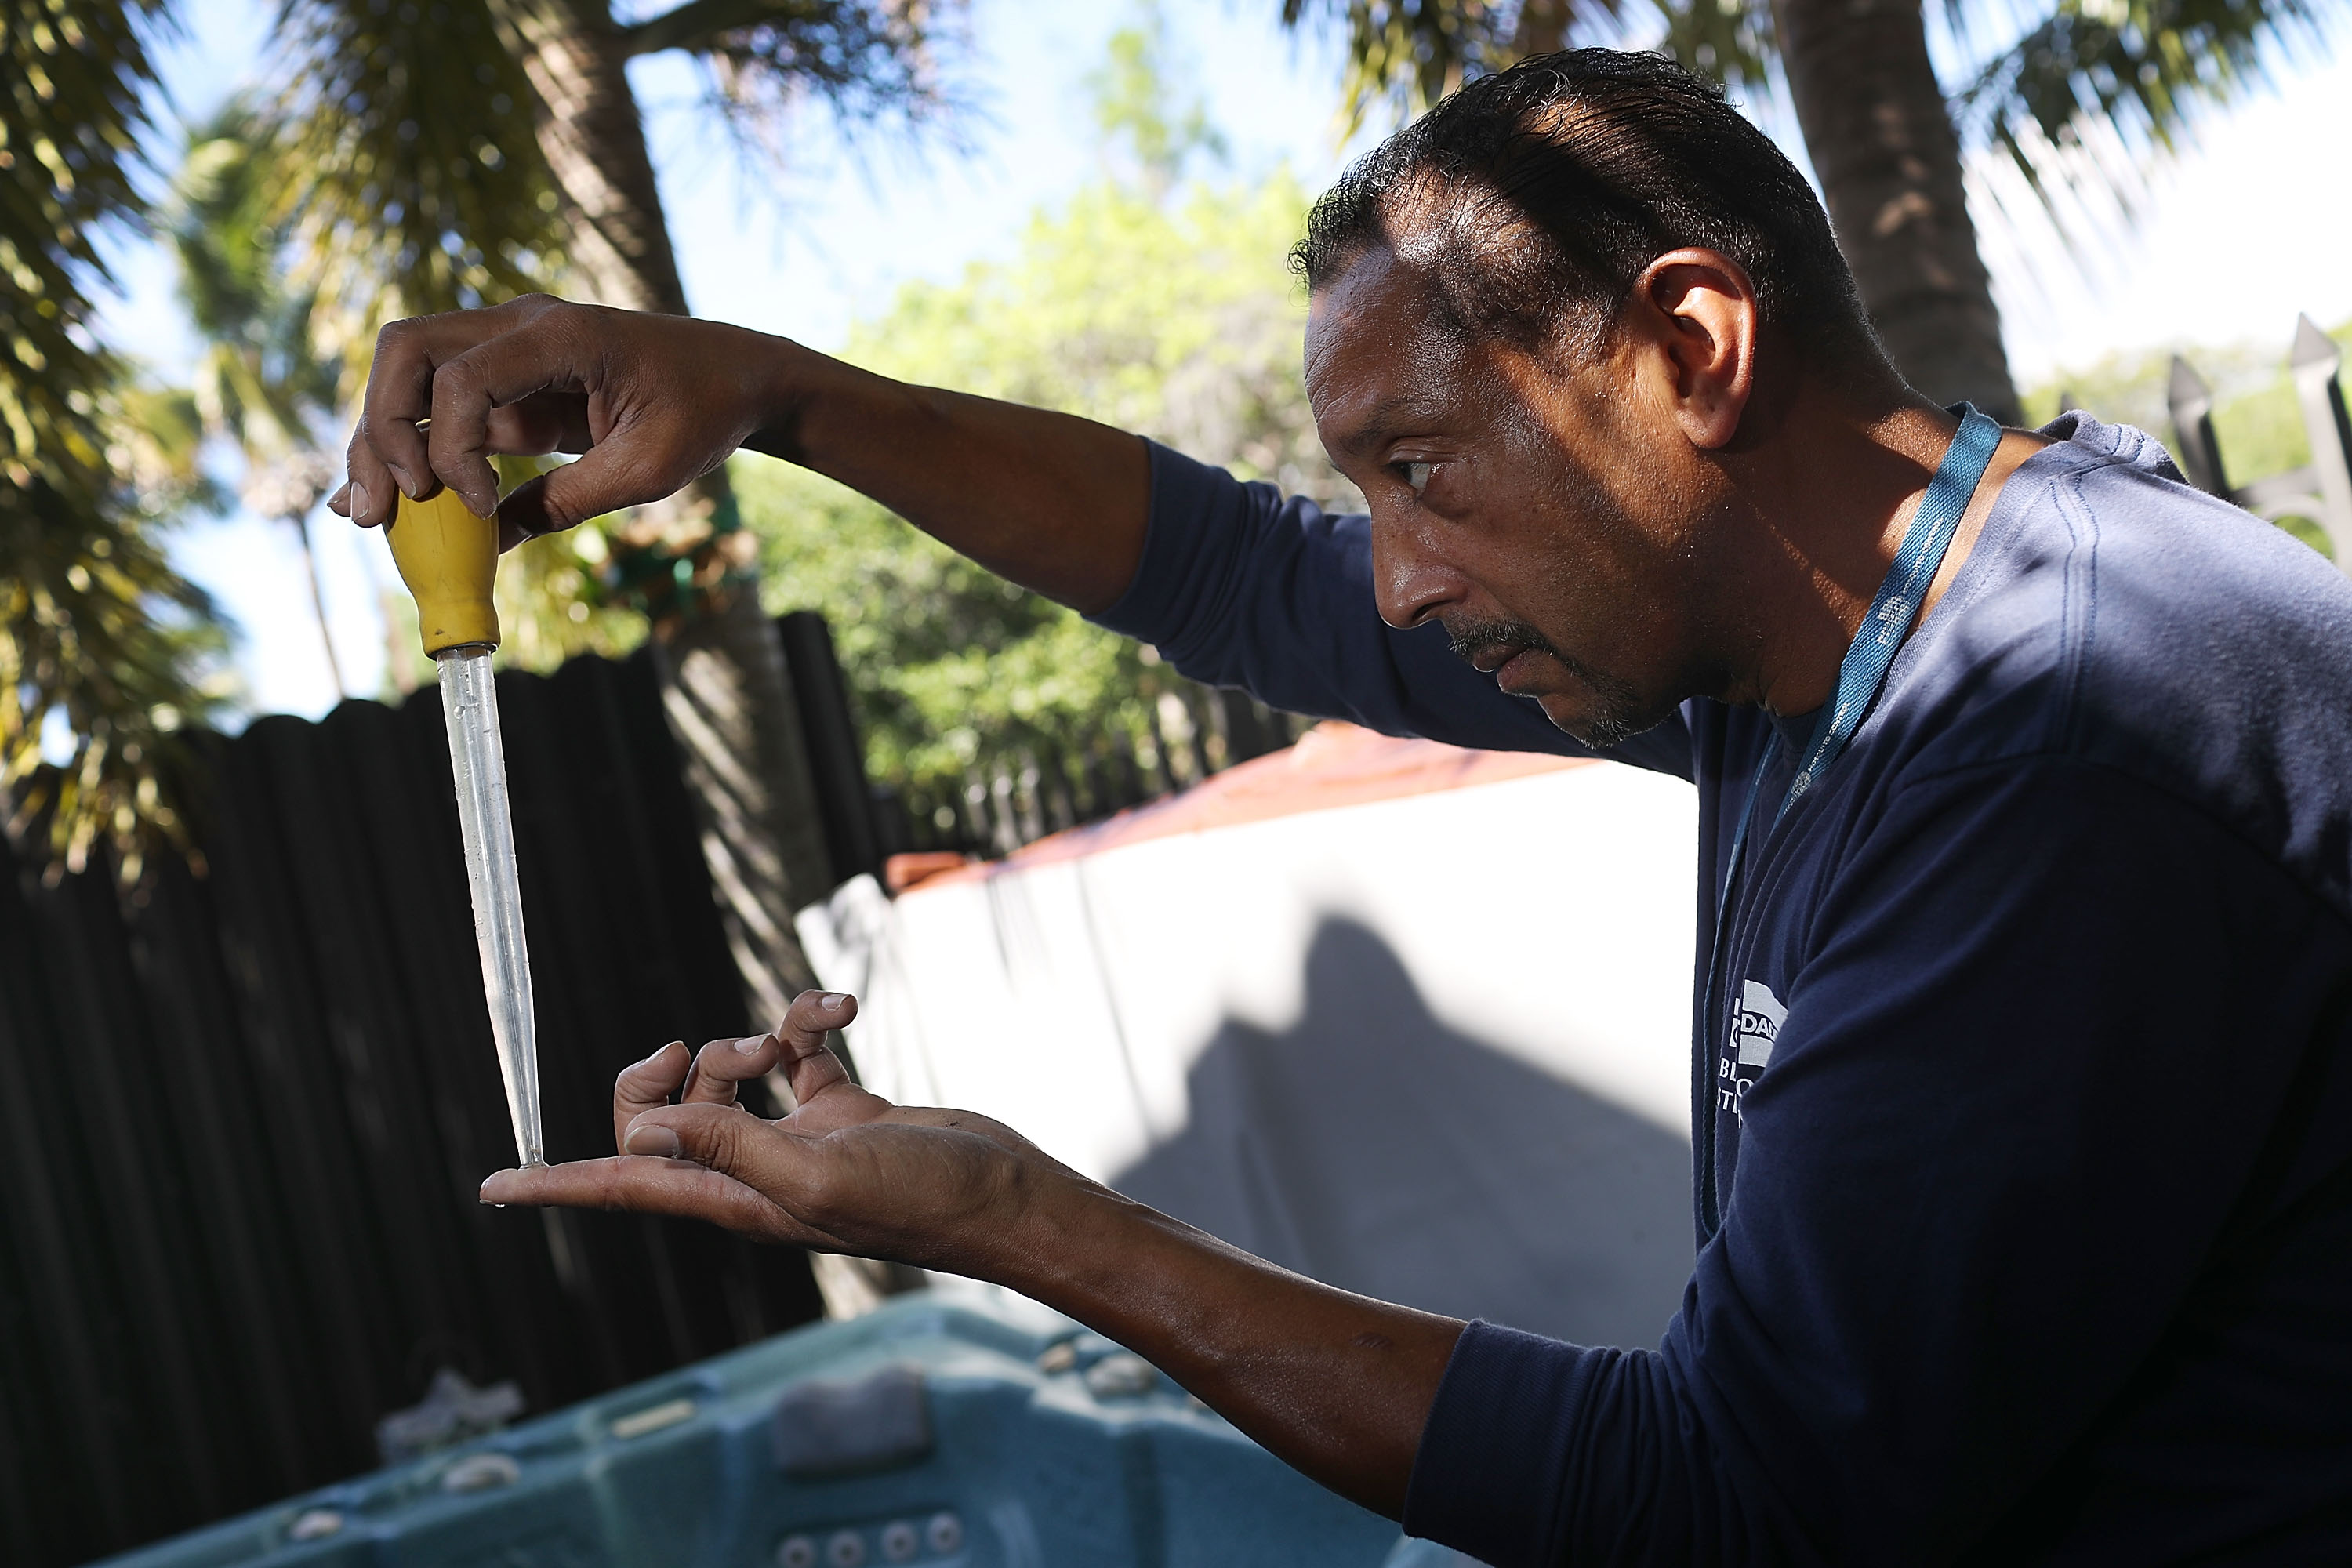 Larry Smart, a Miami-Dade County mosquito control inspector, looks at a mosquito larva in a sample of water taken from standing water before using a pesticide to eradicate the larva as the county continues to be proactive in fighting a possible Zika virus outbreak on May 26, 2016.